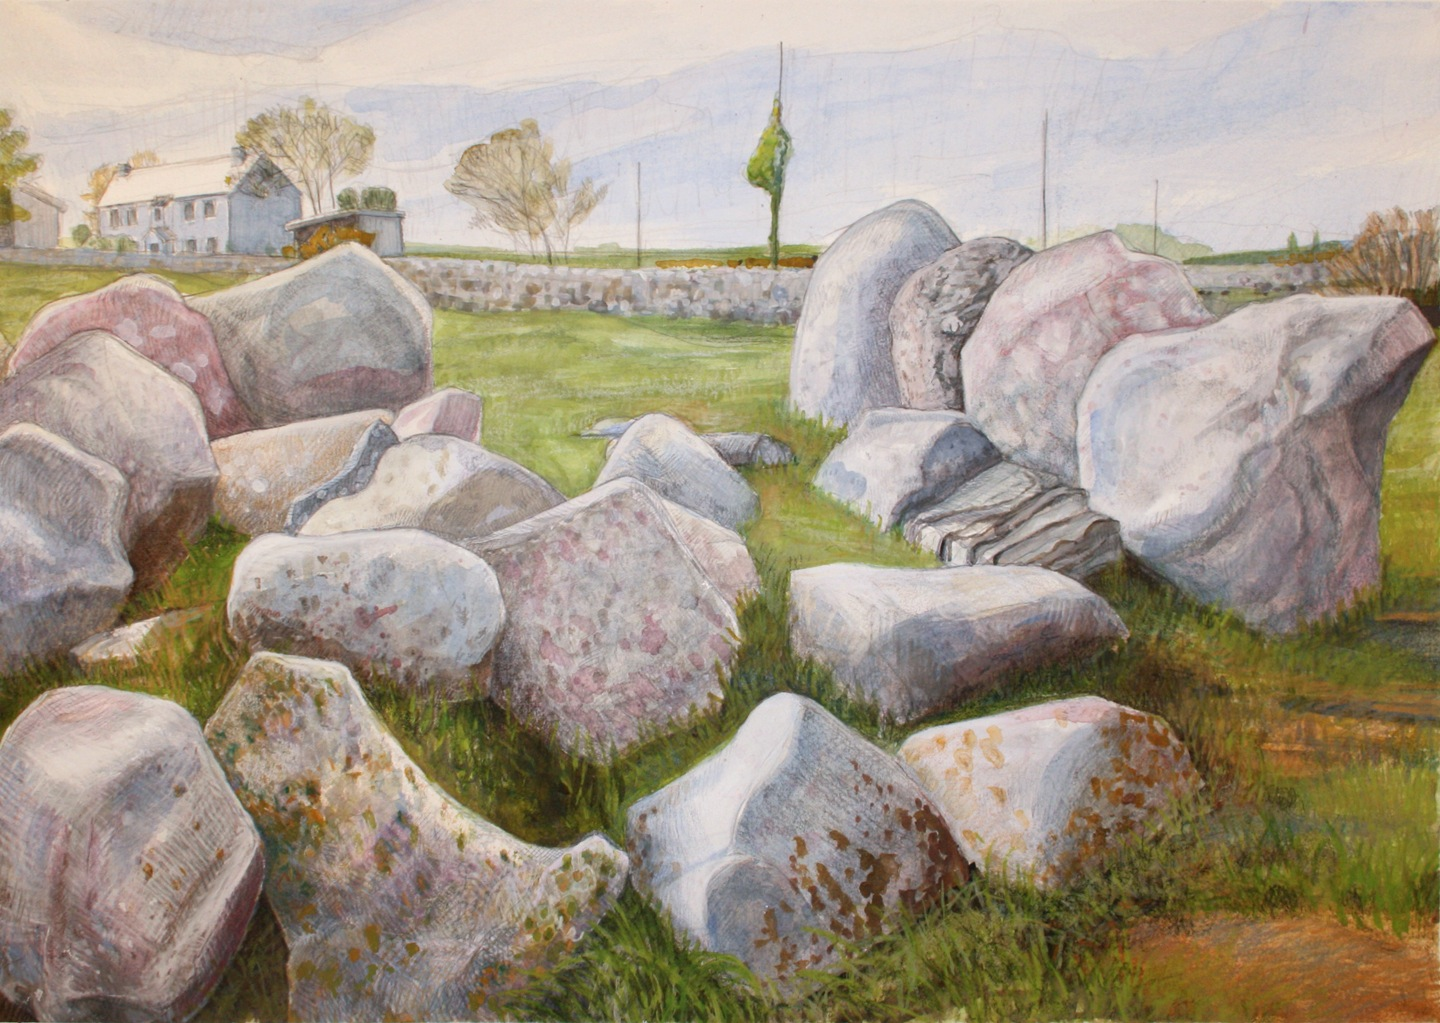 "Wedge Tomb   Watercolor/pencil, 14x20"", 2013"